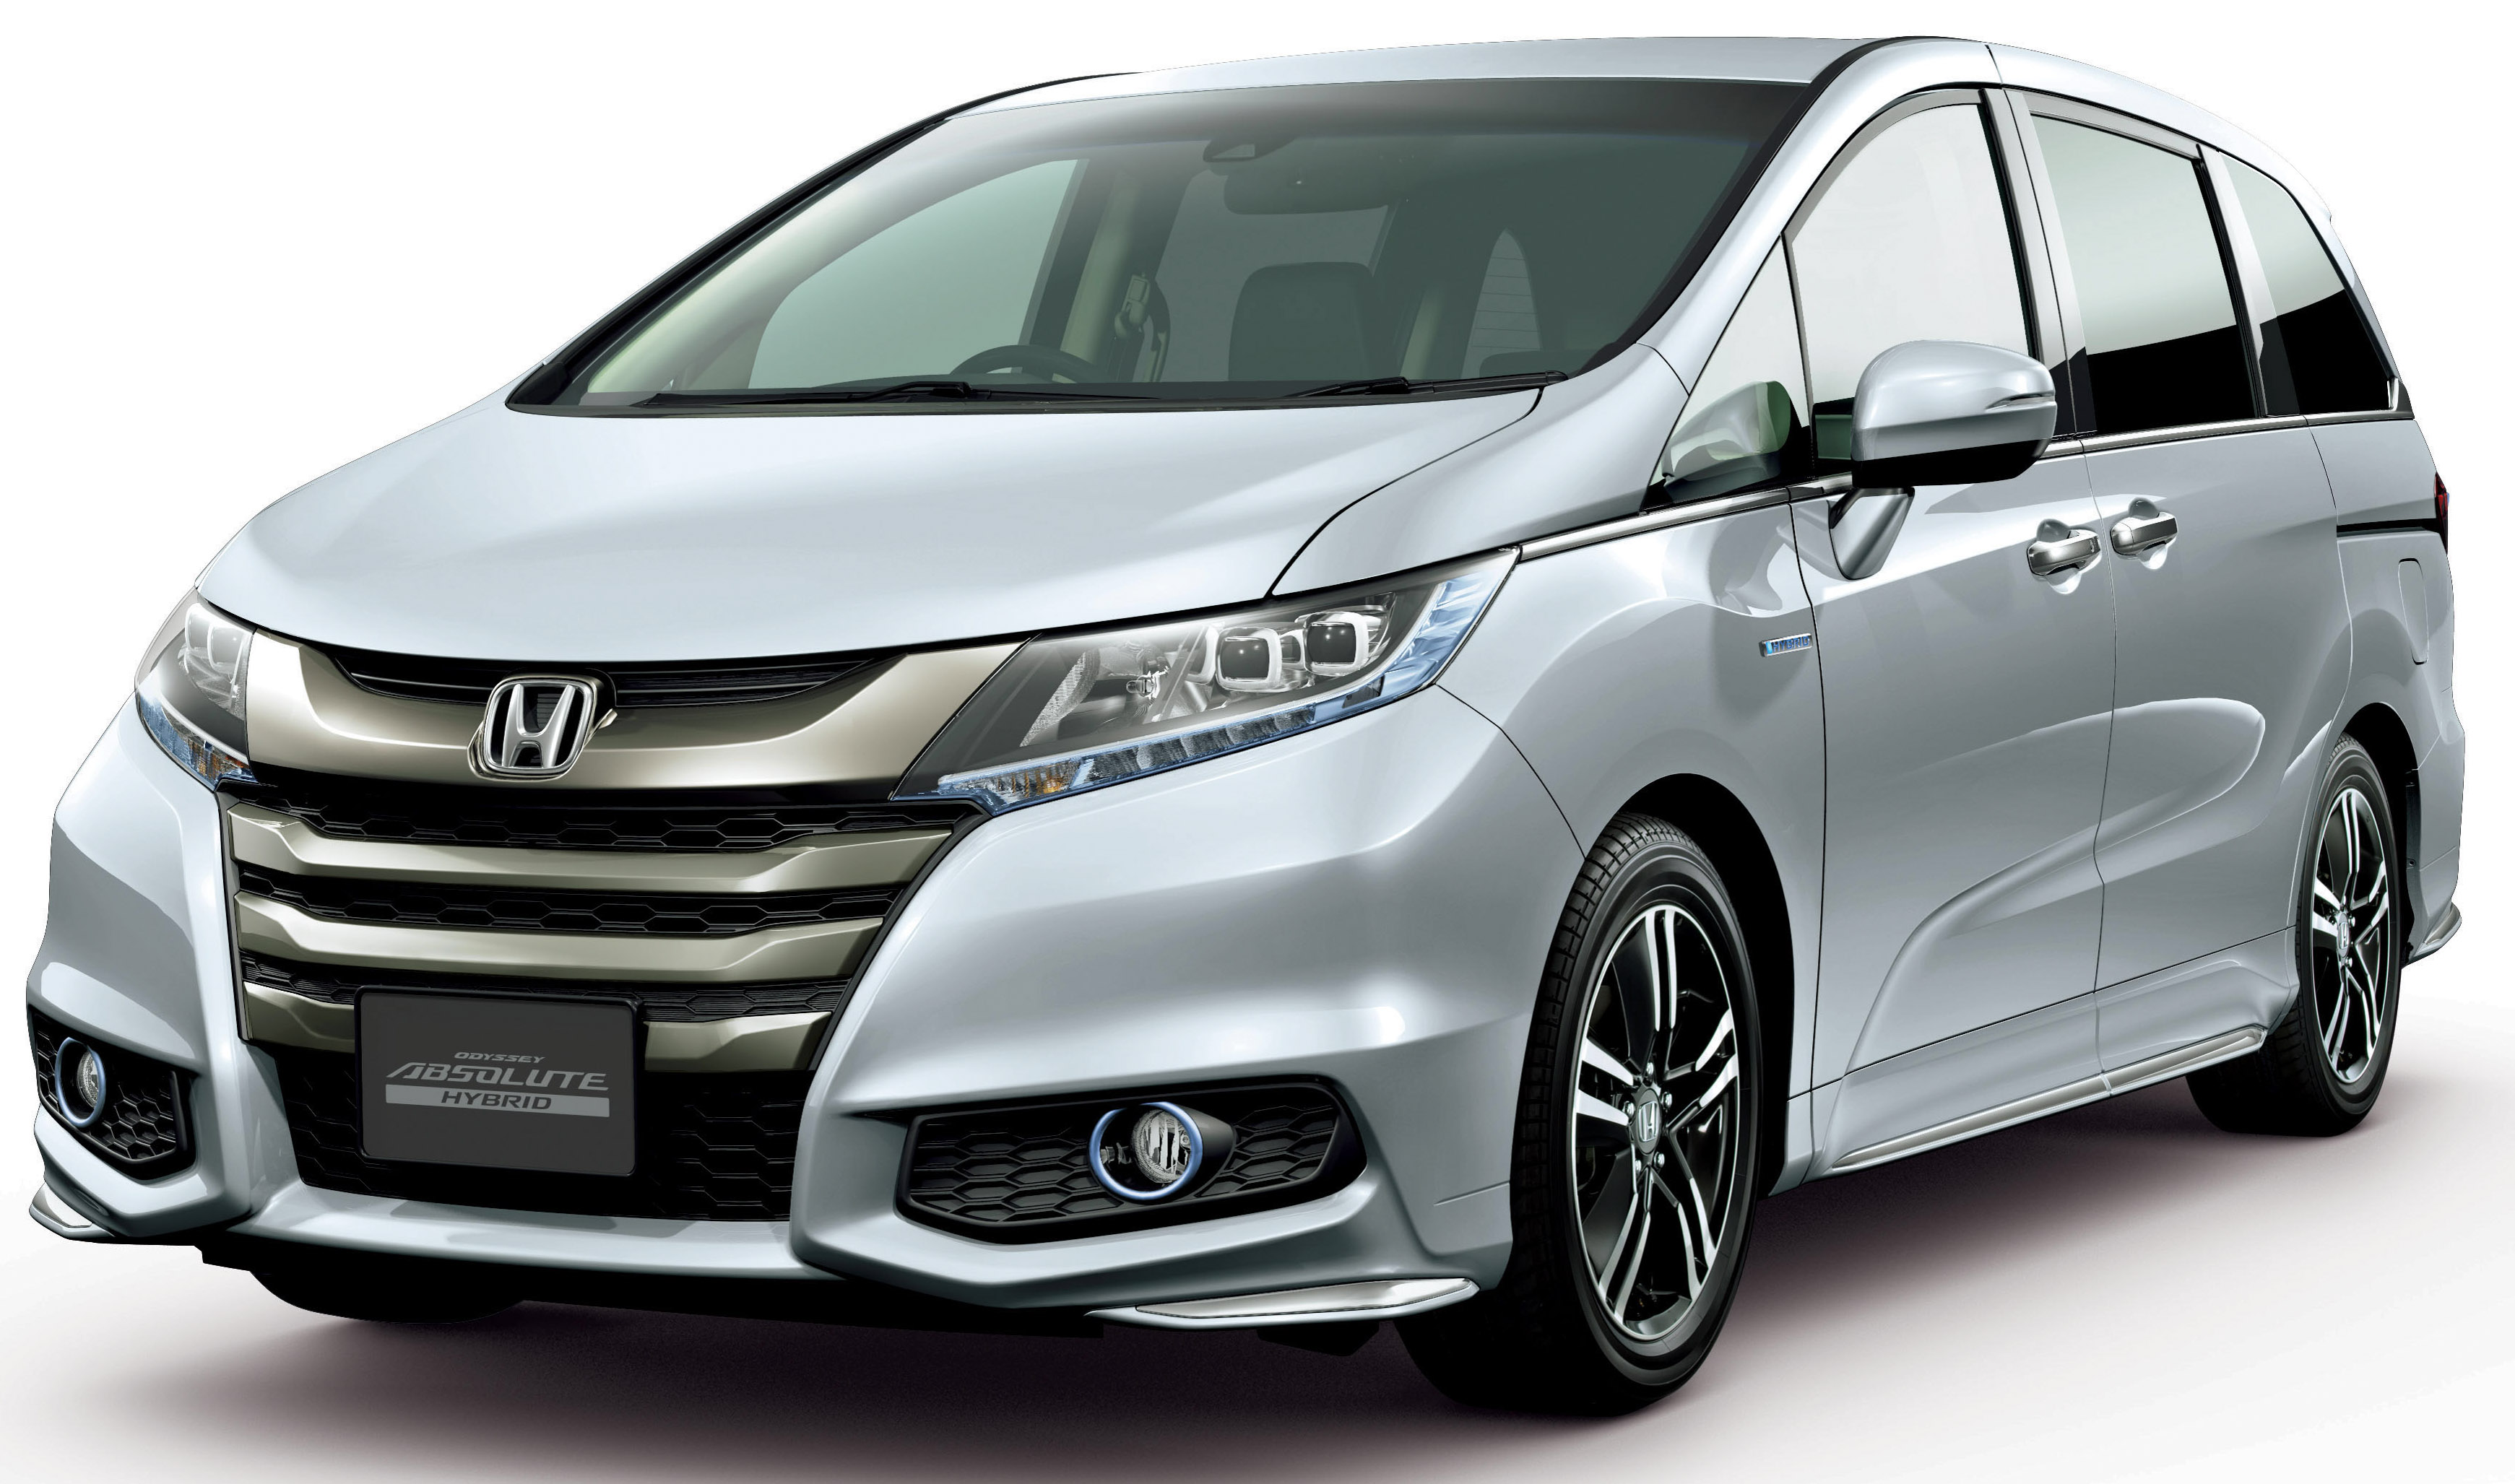 honda odyssey hybrid refresh goes on sale in japan image 438321. Black Bedroom Furniture Sets. Home Design Ideas